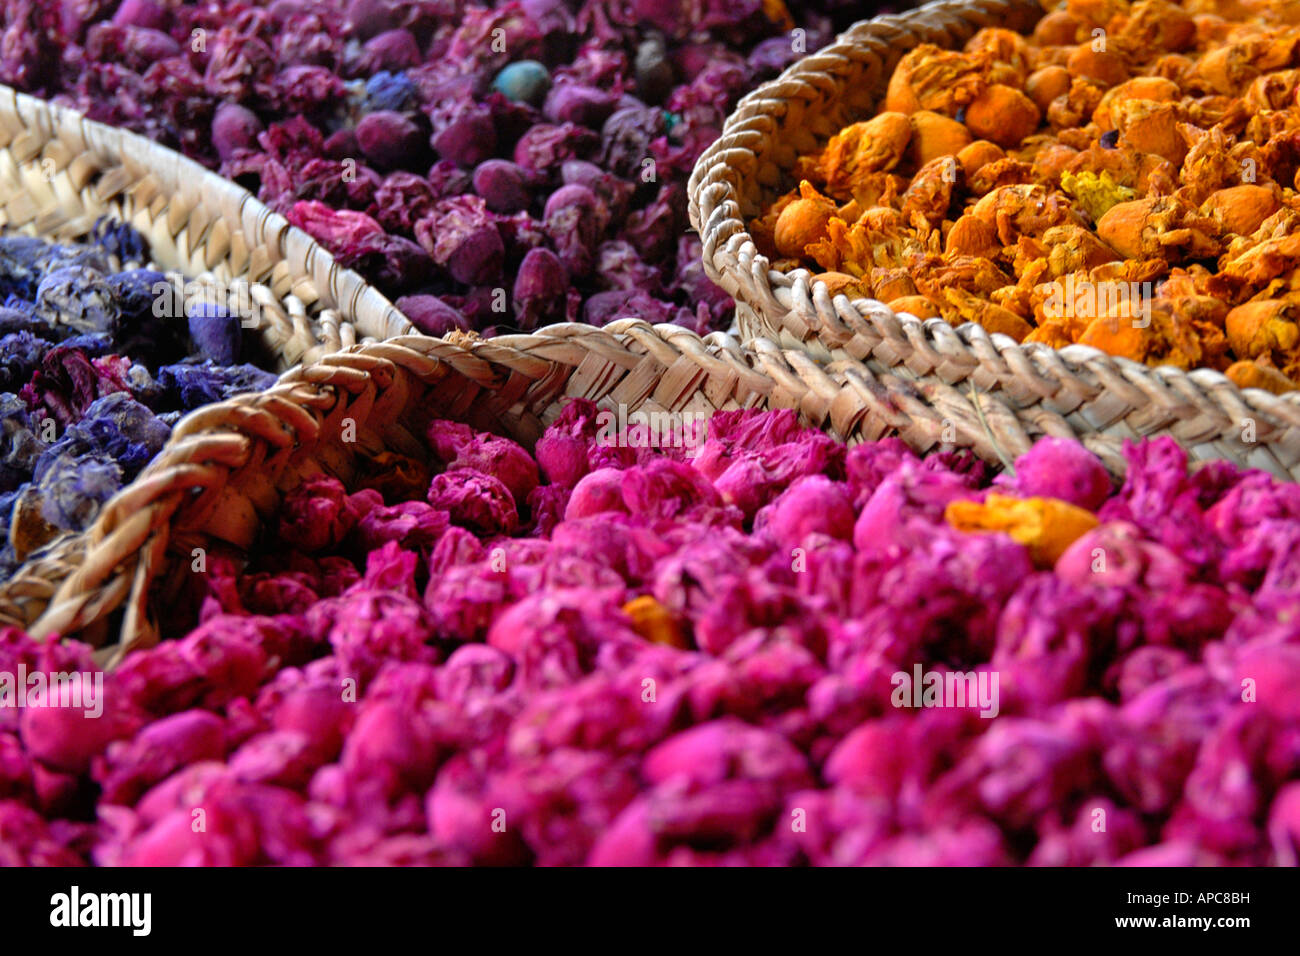 baskets of dried rose buds marrakech souk - Stock Image